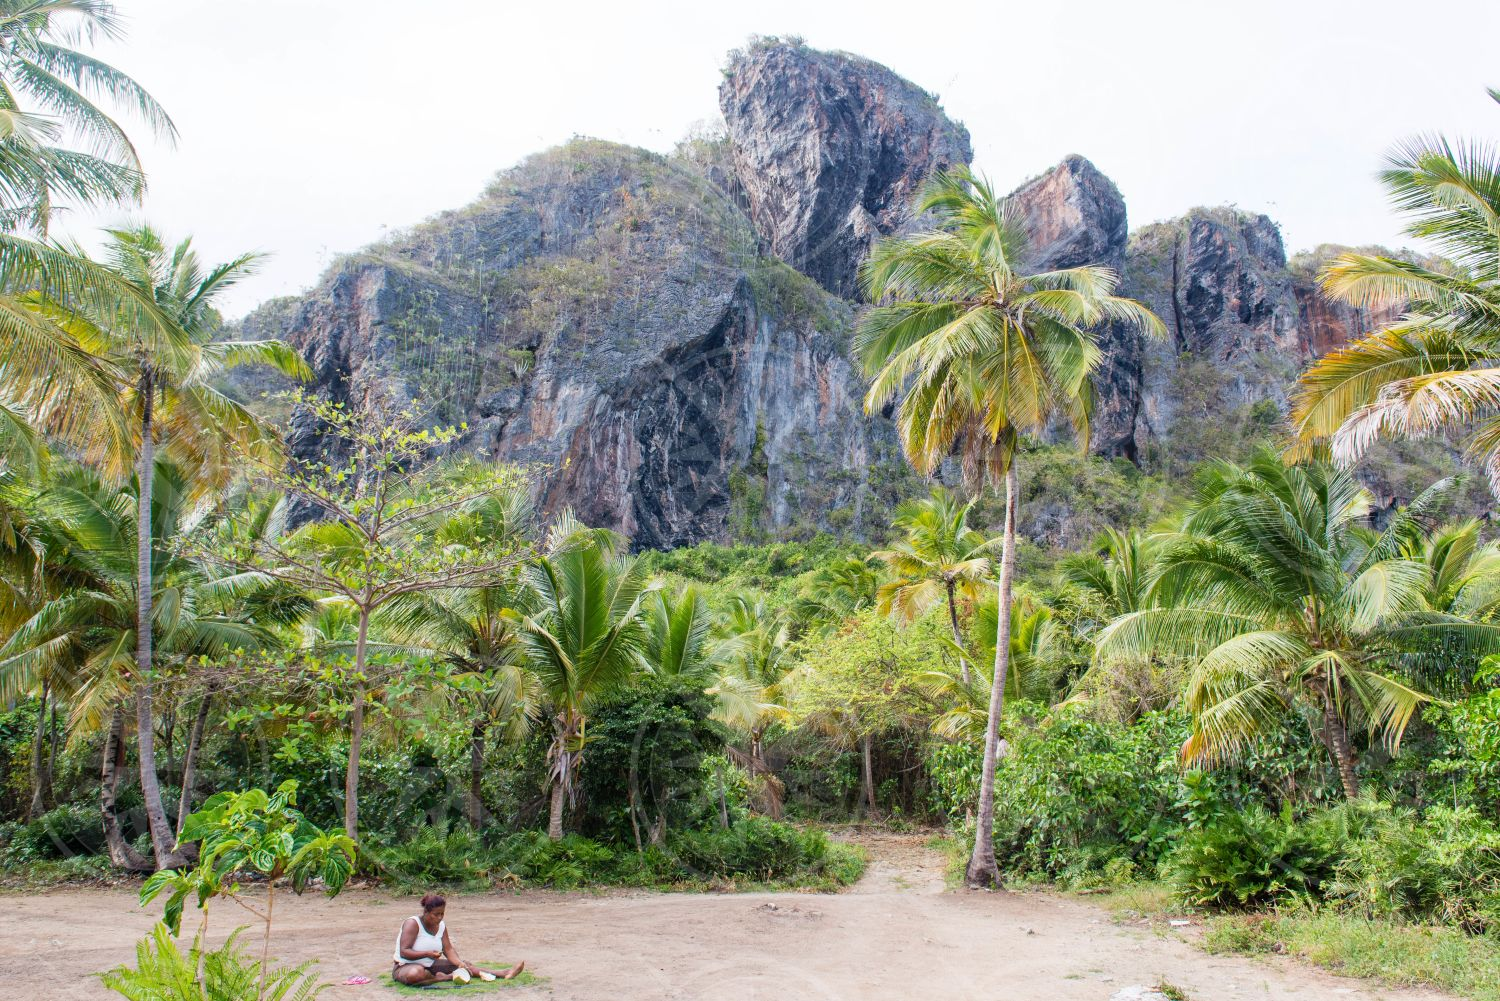 Woman sitting in front of coconut palm trees and rock formation